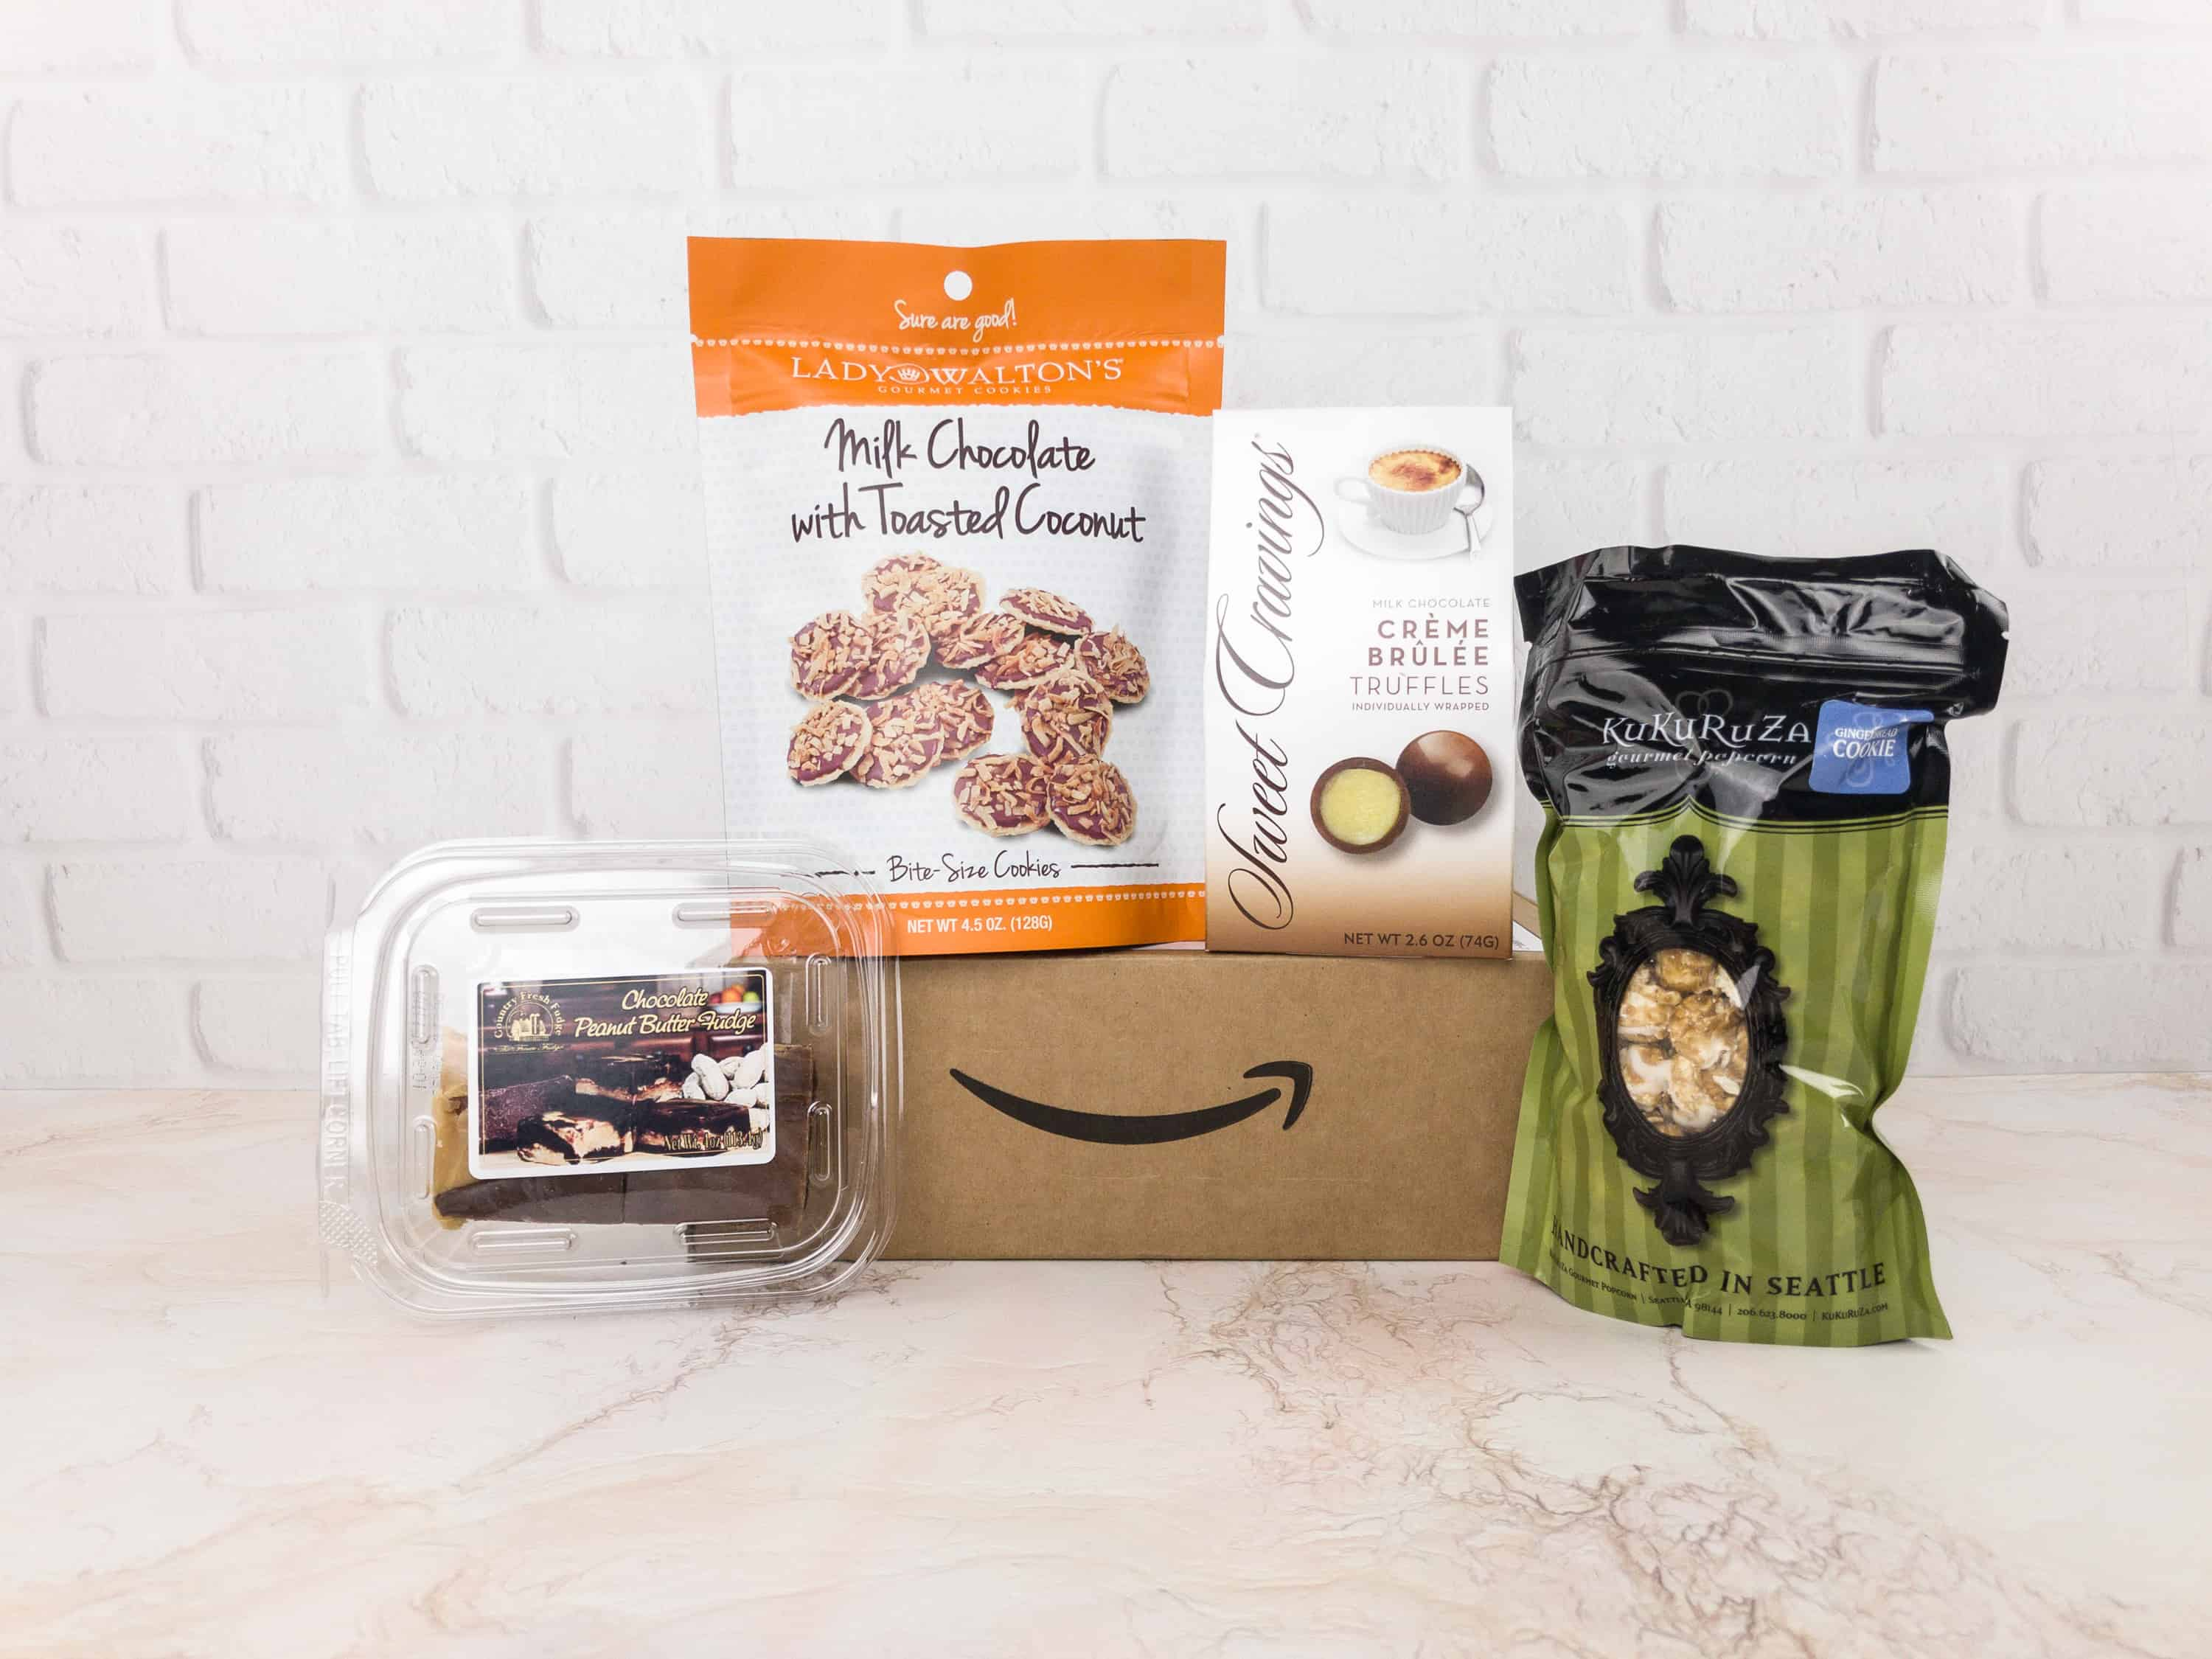 Amazon Prime Surprise Sweets Box January 2018 Review – Final Box